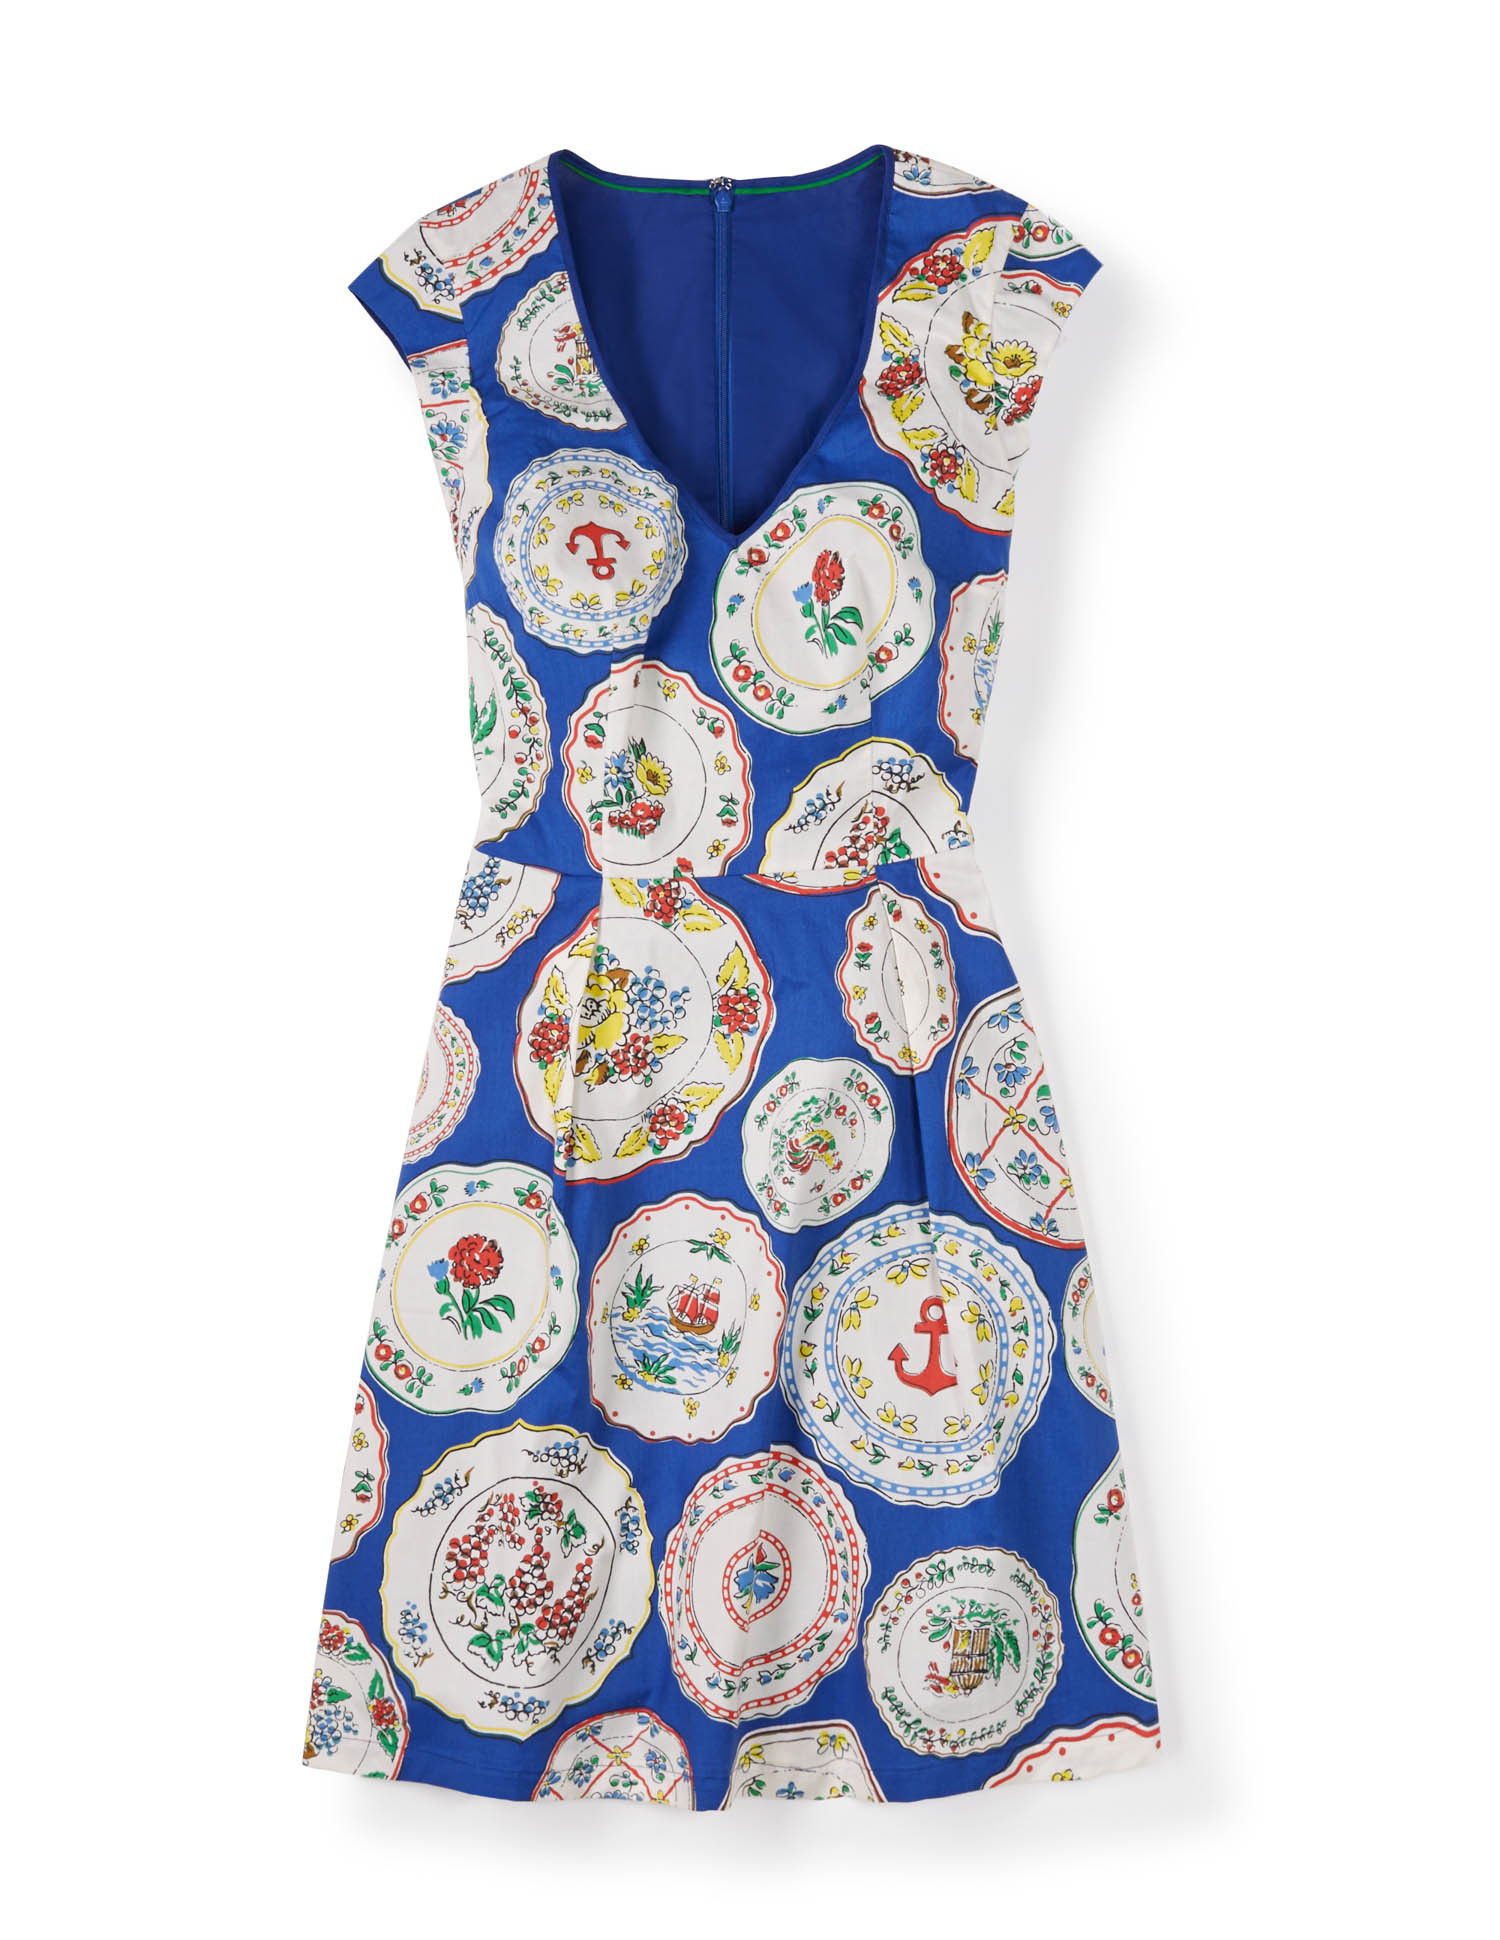 Printed spring dress in blue plates, £89, Boden